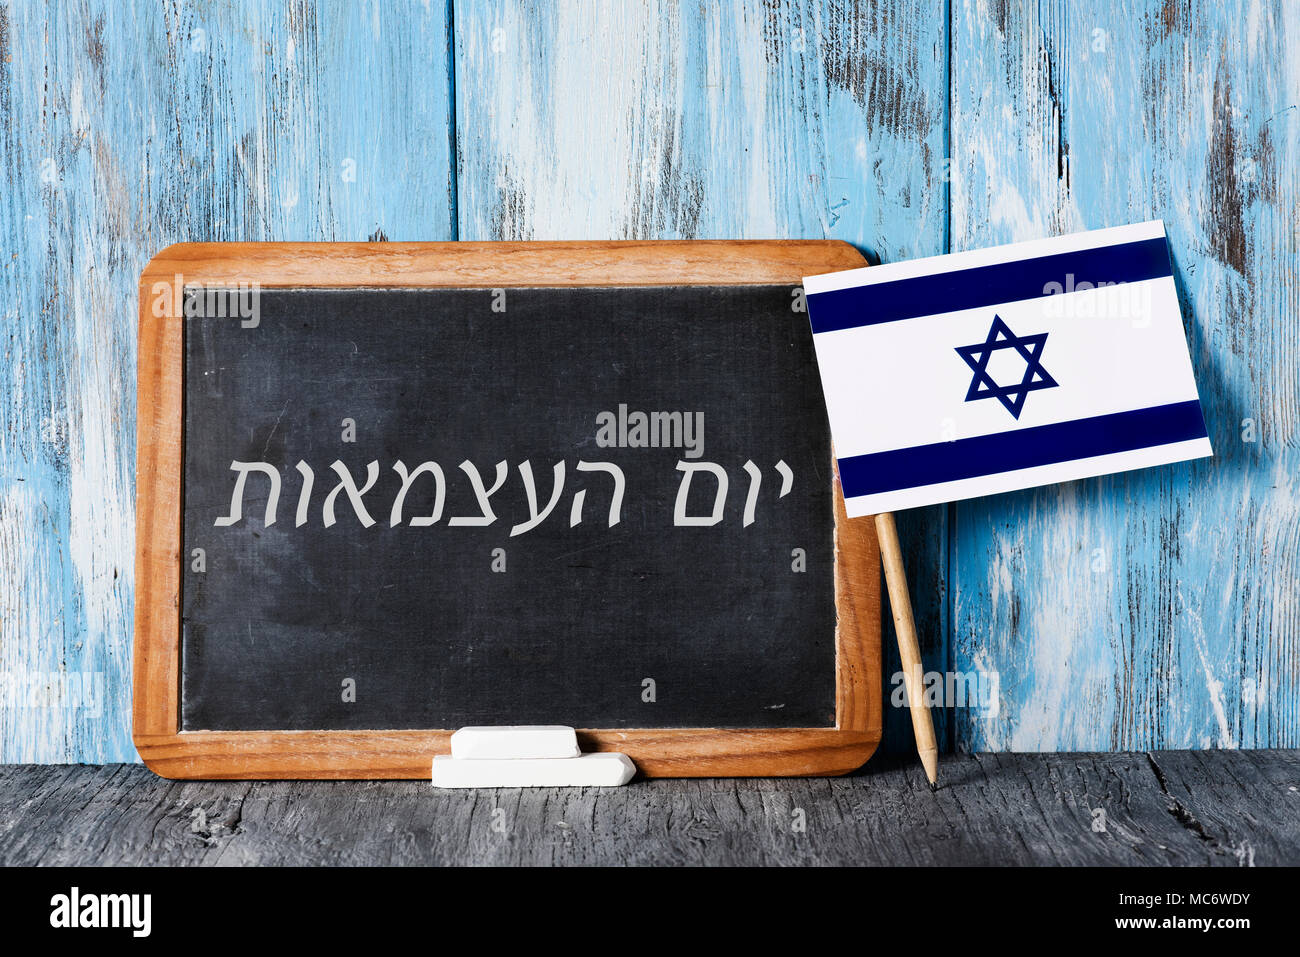 a wooden-framed chalkboard with the text independence day written in hebrew in it, some pieces of chalk and an israeli flag on a rustic wooden surface - Stock Image